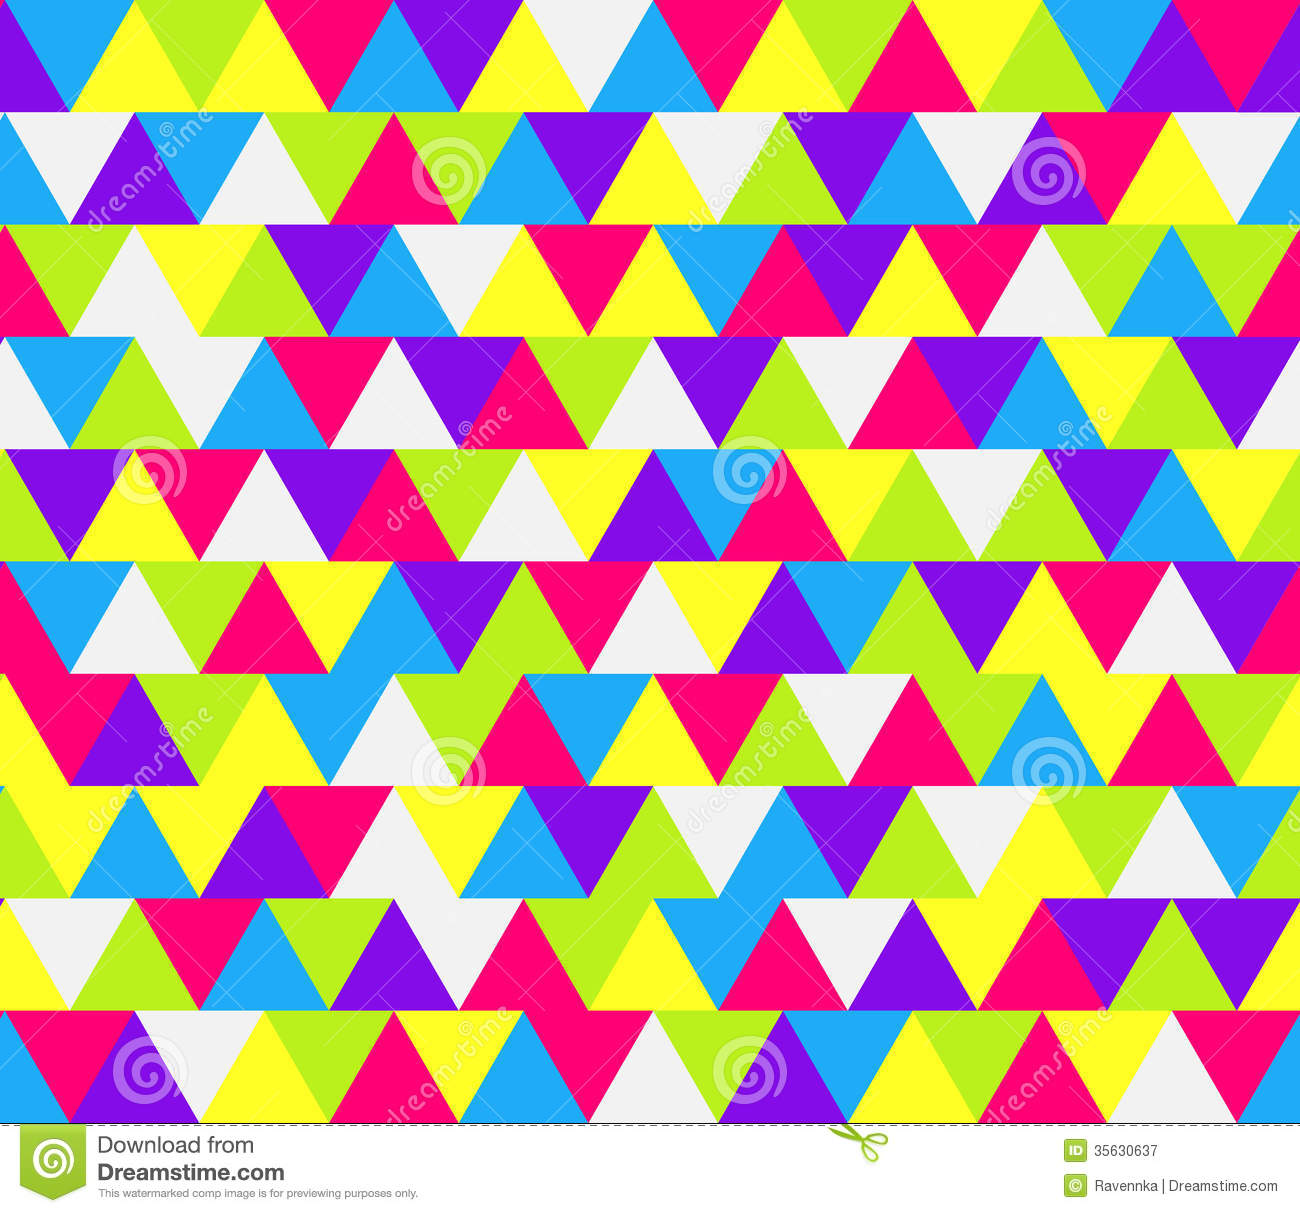 Seamless colorful triangle pattern for wallpaper  pattern fills  web    Triangle Pattern Wallpaper